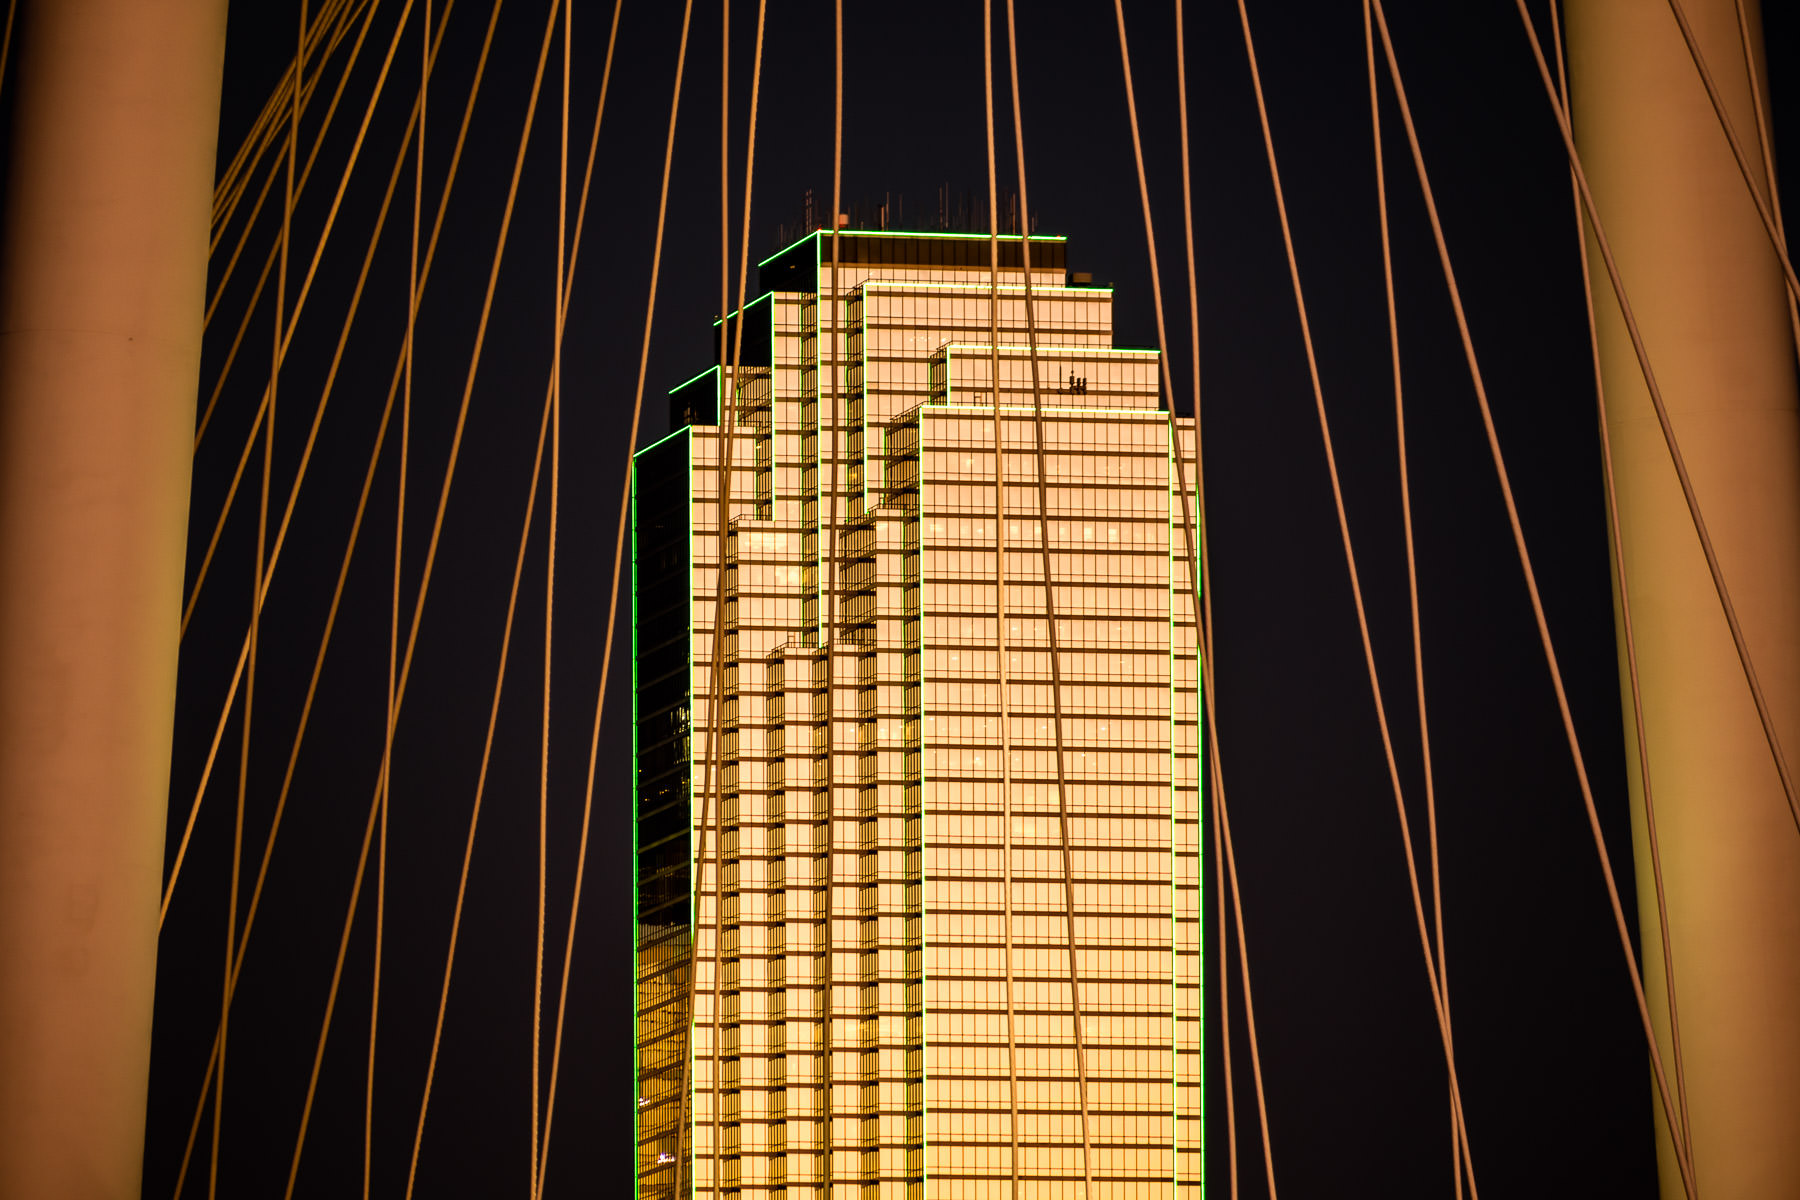 The last light of the day illuminates Downtown Dallas' Bank of America Plaza, as seen through the cables of the nearby Margaret Hunt Hill Bridge.